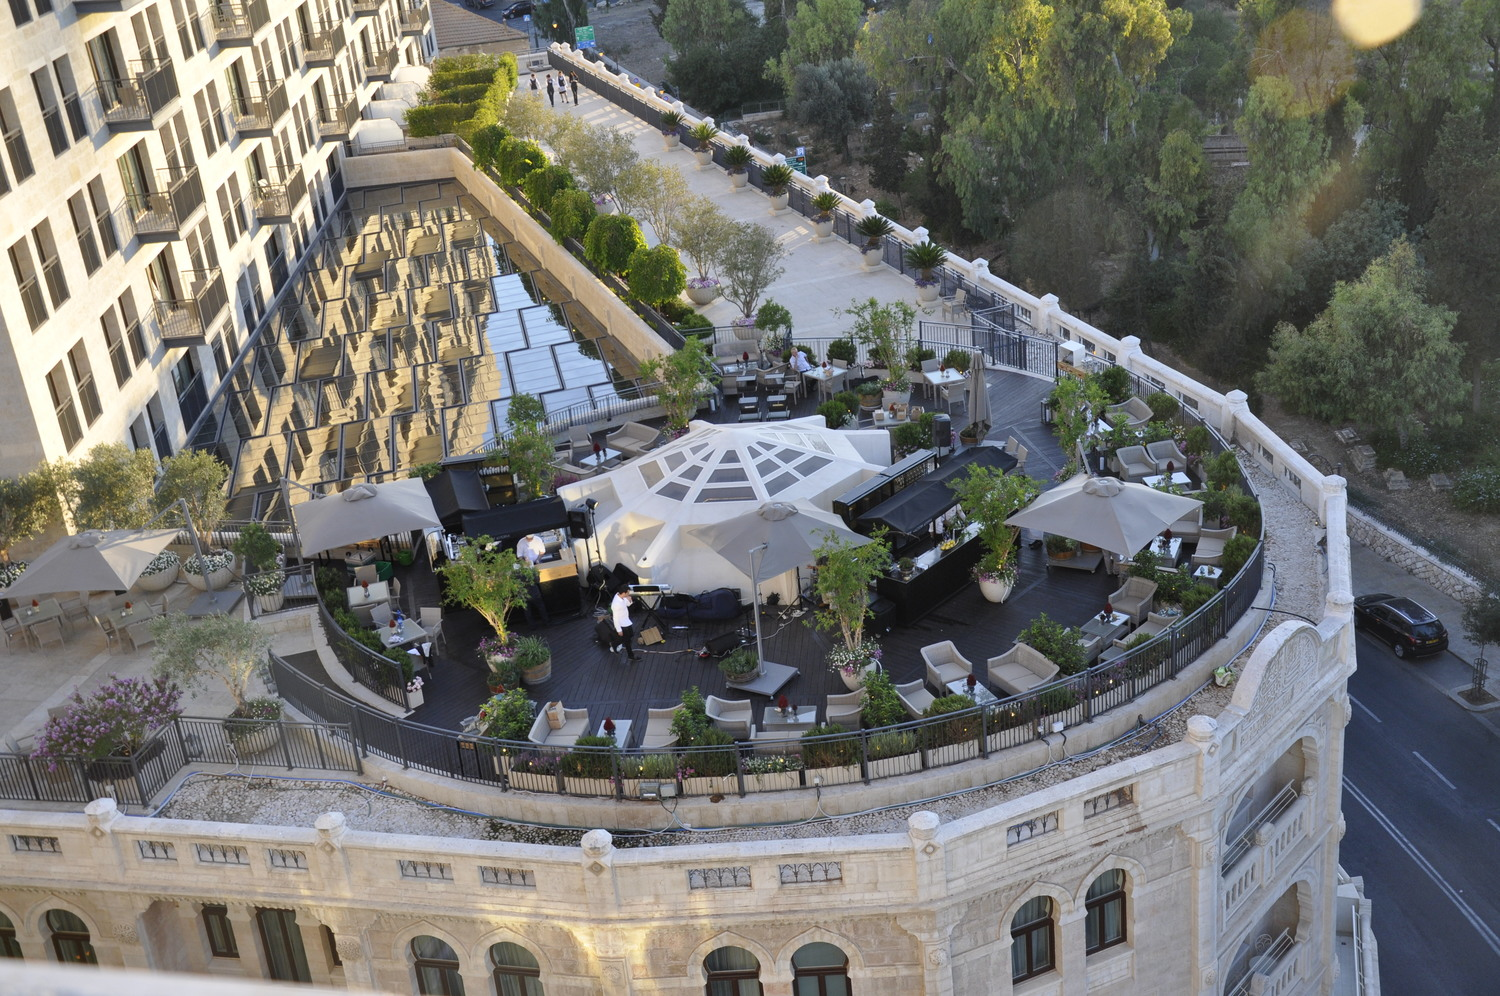 The Garden Terrace at the Waldorf Astoria Jerusalem. Photo courtesy of Delicious Israel